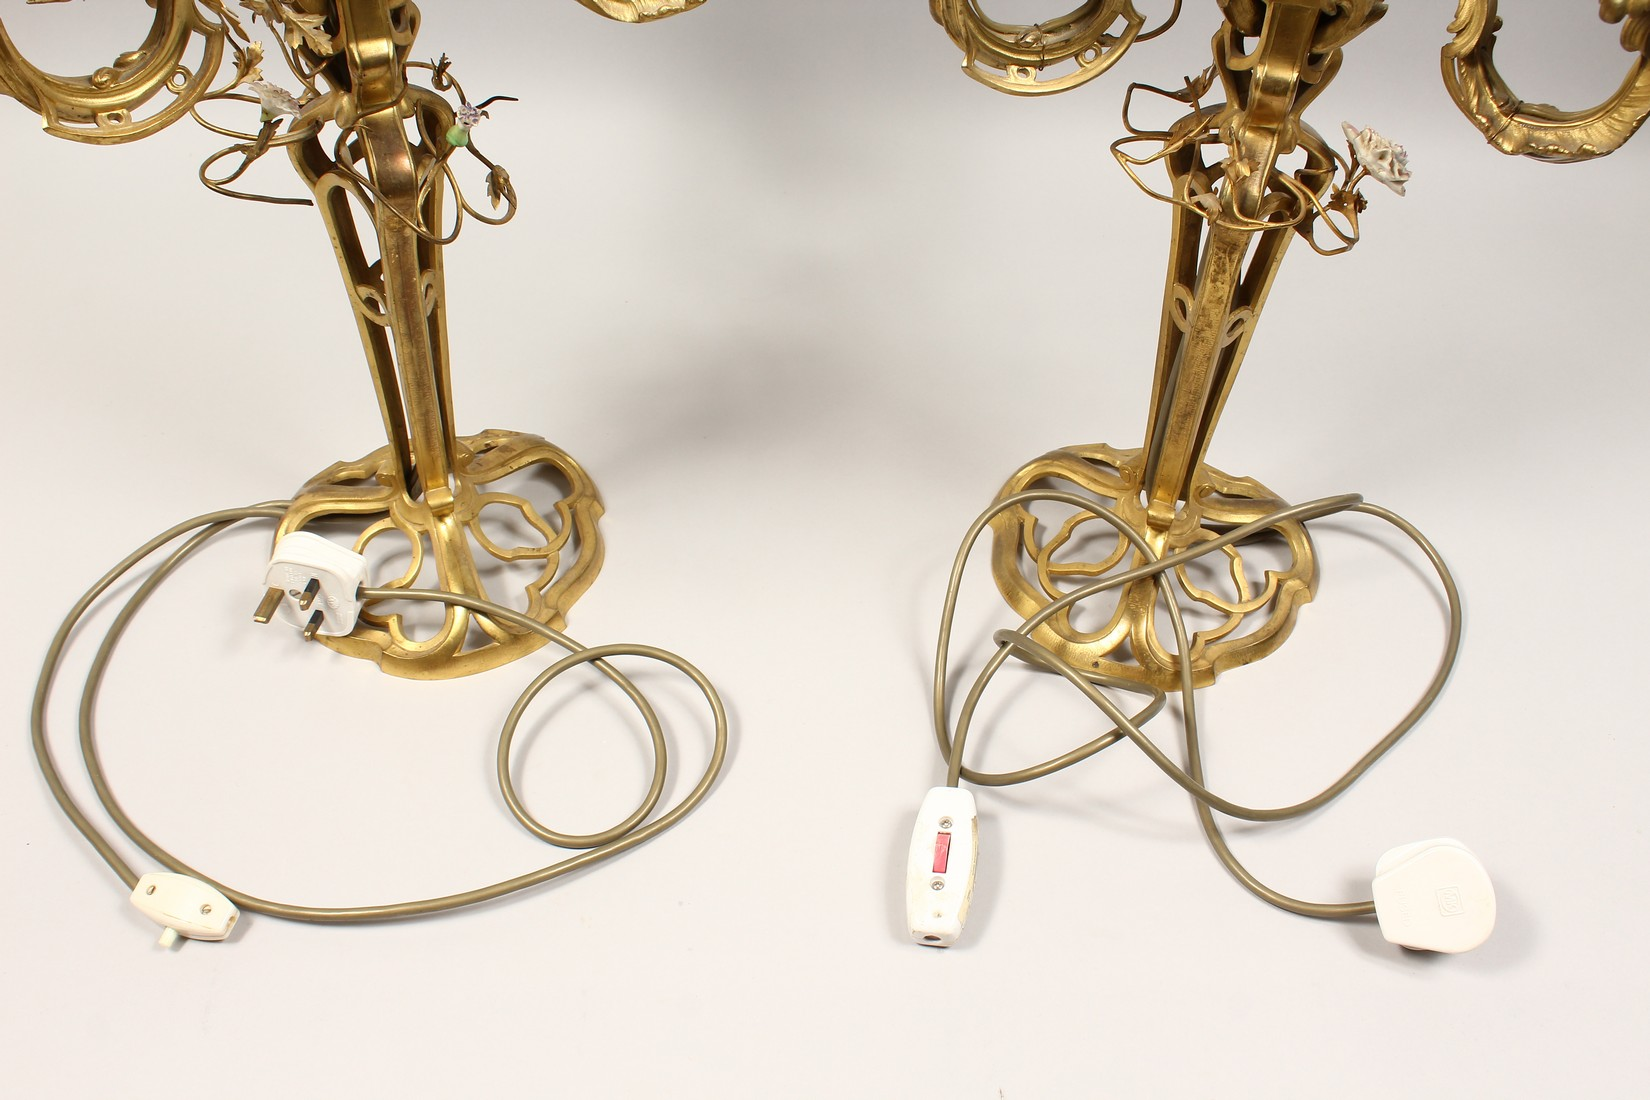 A GOOD PAIR OF FRENCH BRONZE THREE BRANCH CANDELABRA with scrolling arms and porcelain flowers 25ins - Image 5 of 5